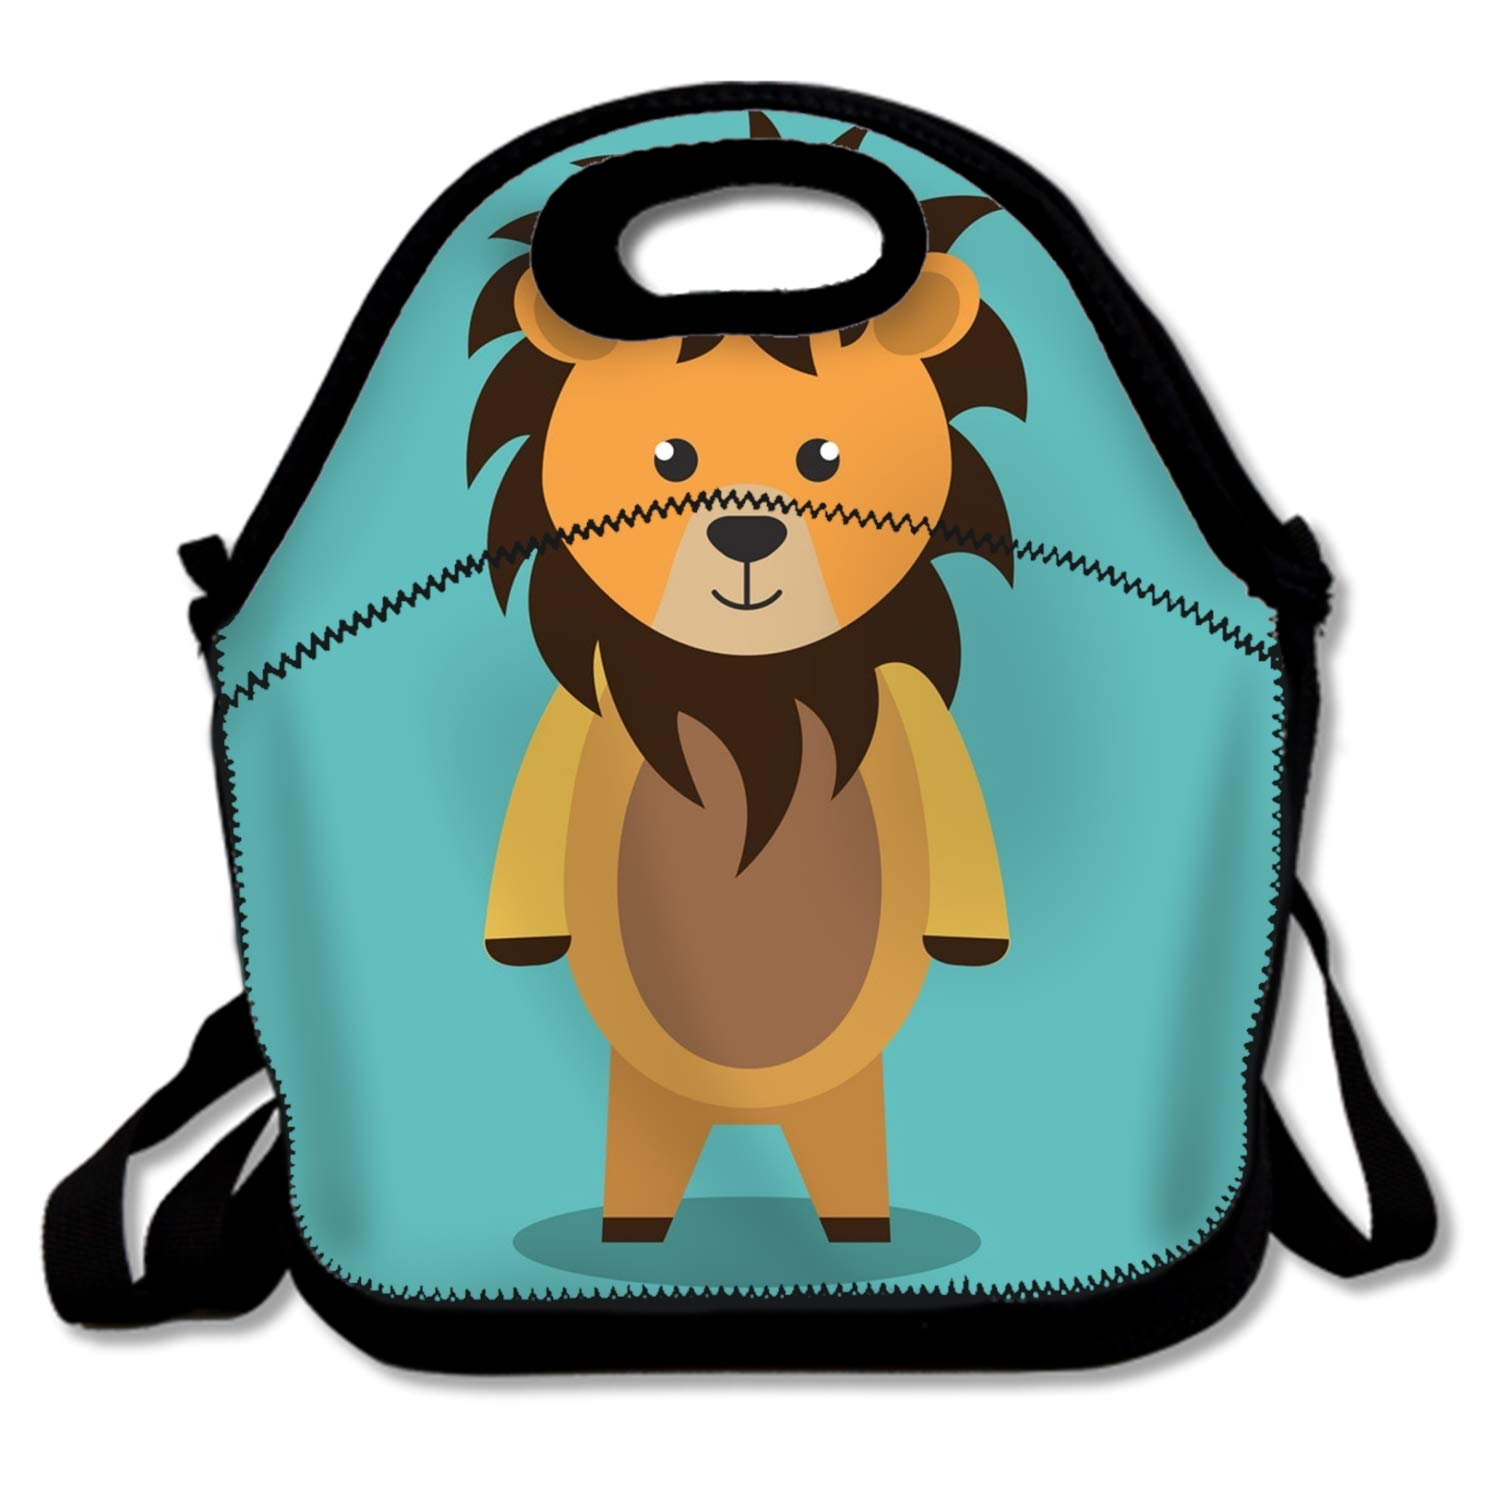 Cute Lunch Bag/Lunch Box/Lunch Tote/Picnic Bags Insulated Cooler Travel Organizer Cute Lion Isolated Icon Design